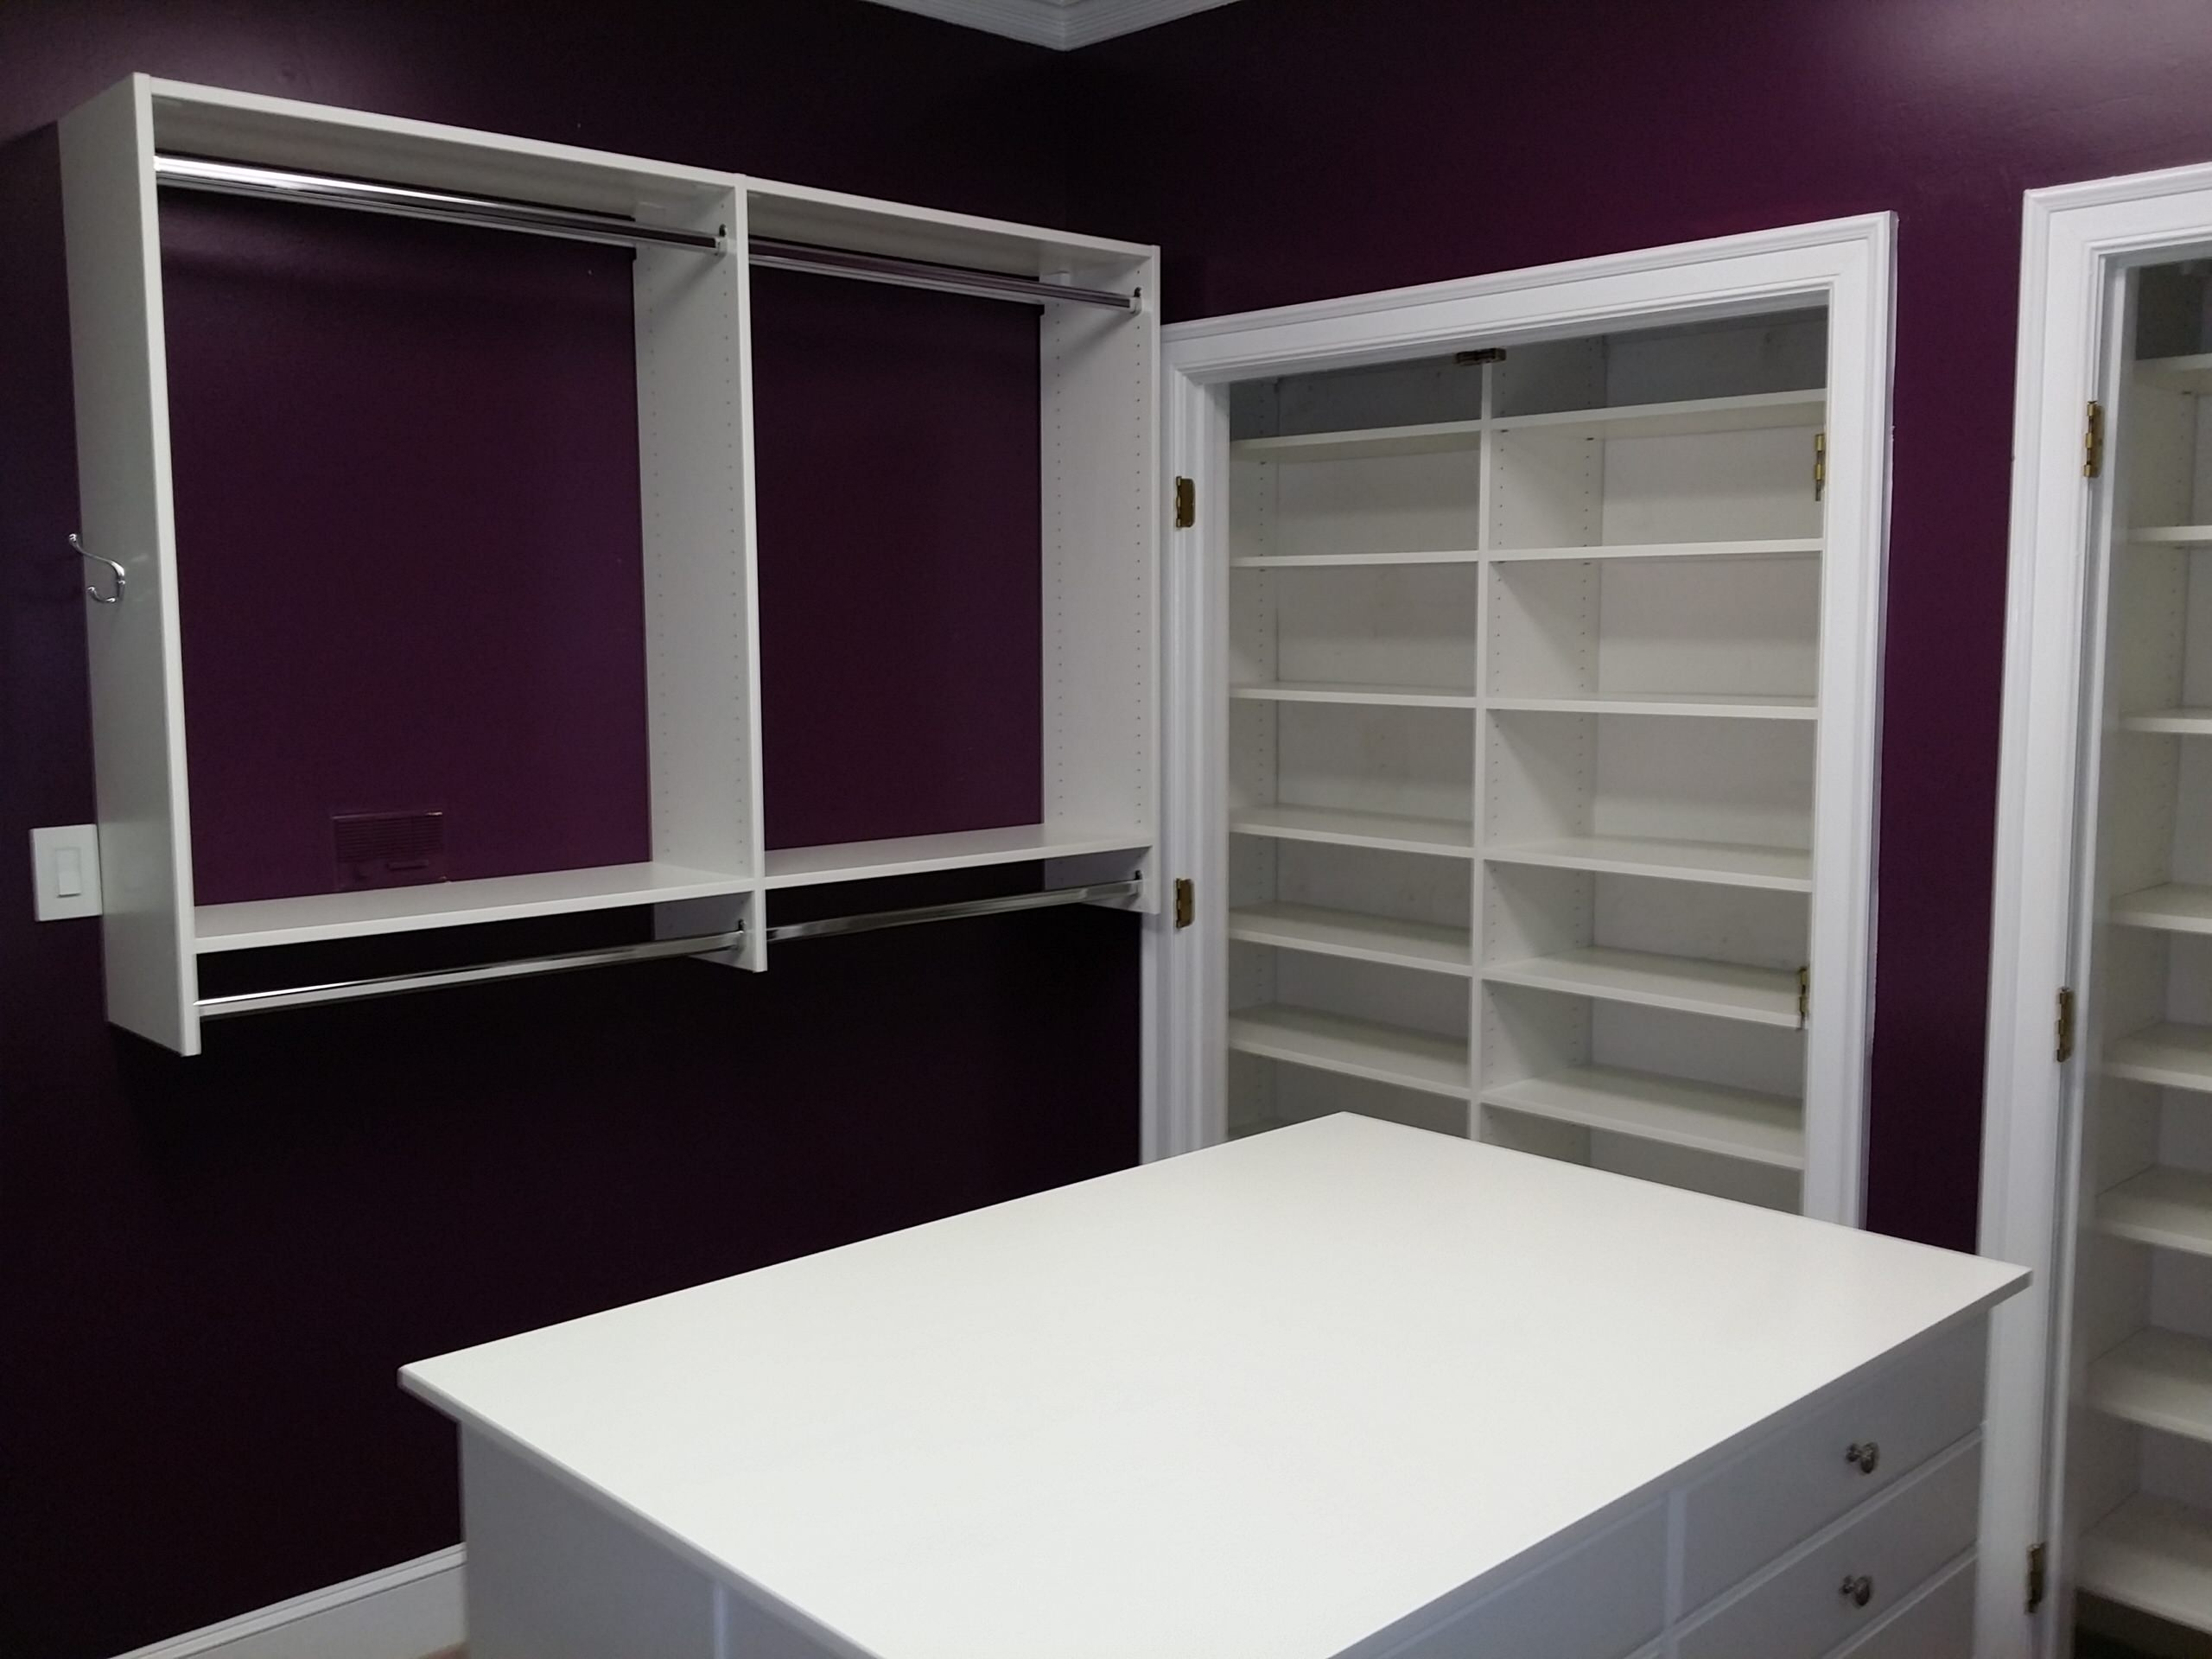 Bedroom Conversion to a Walk-In Closet